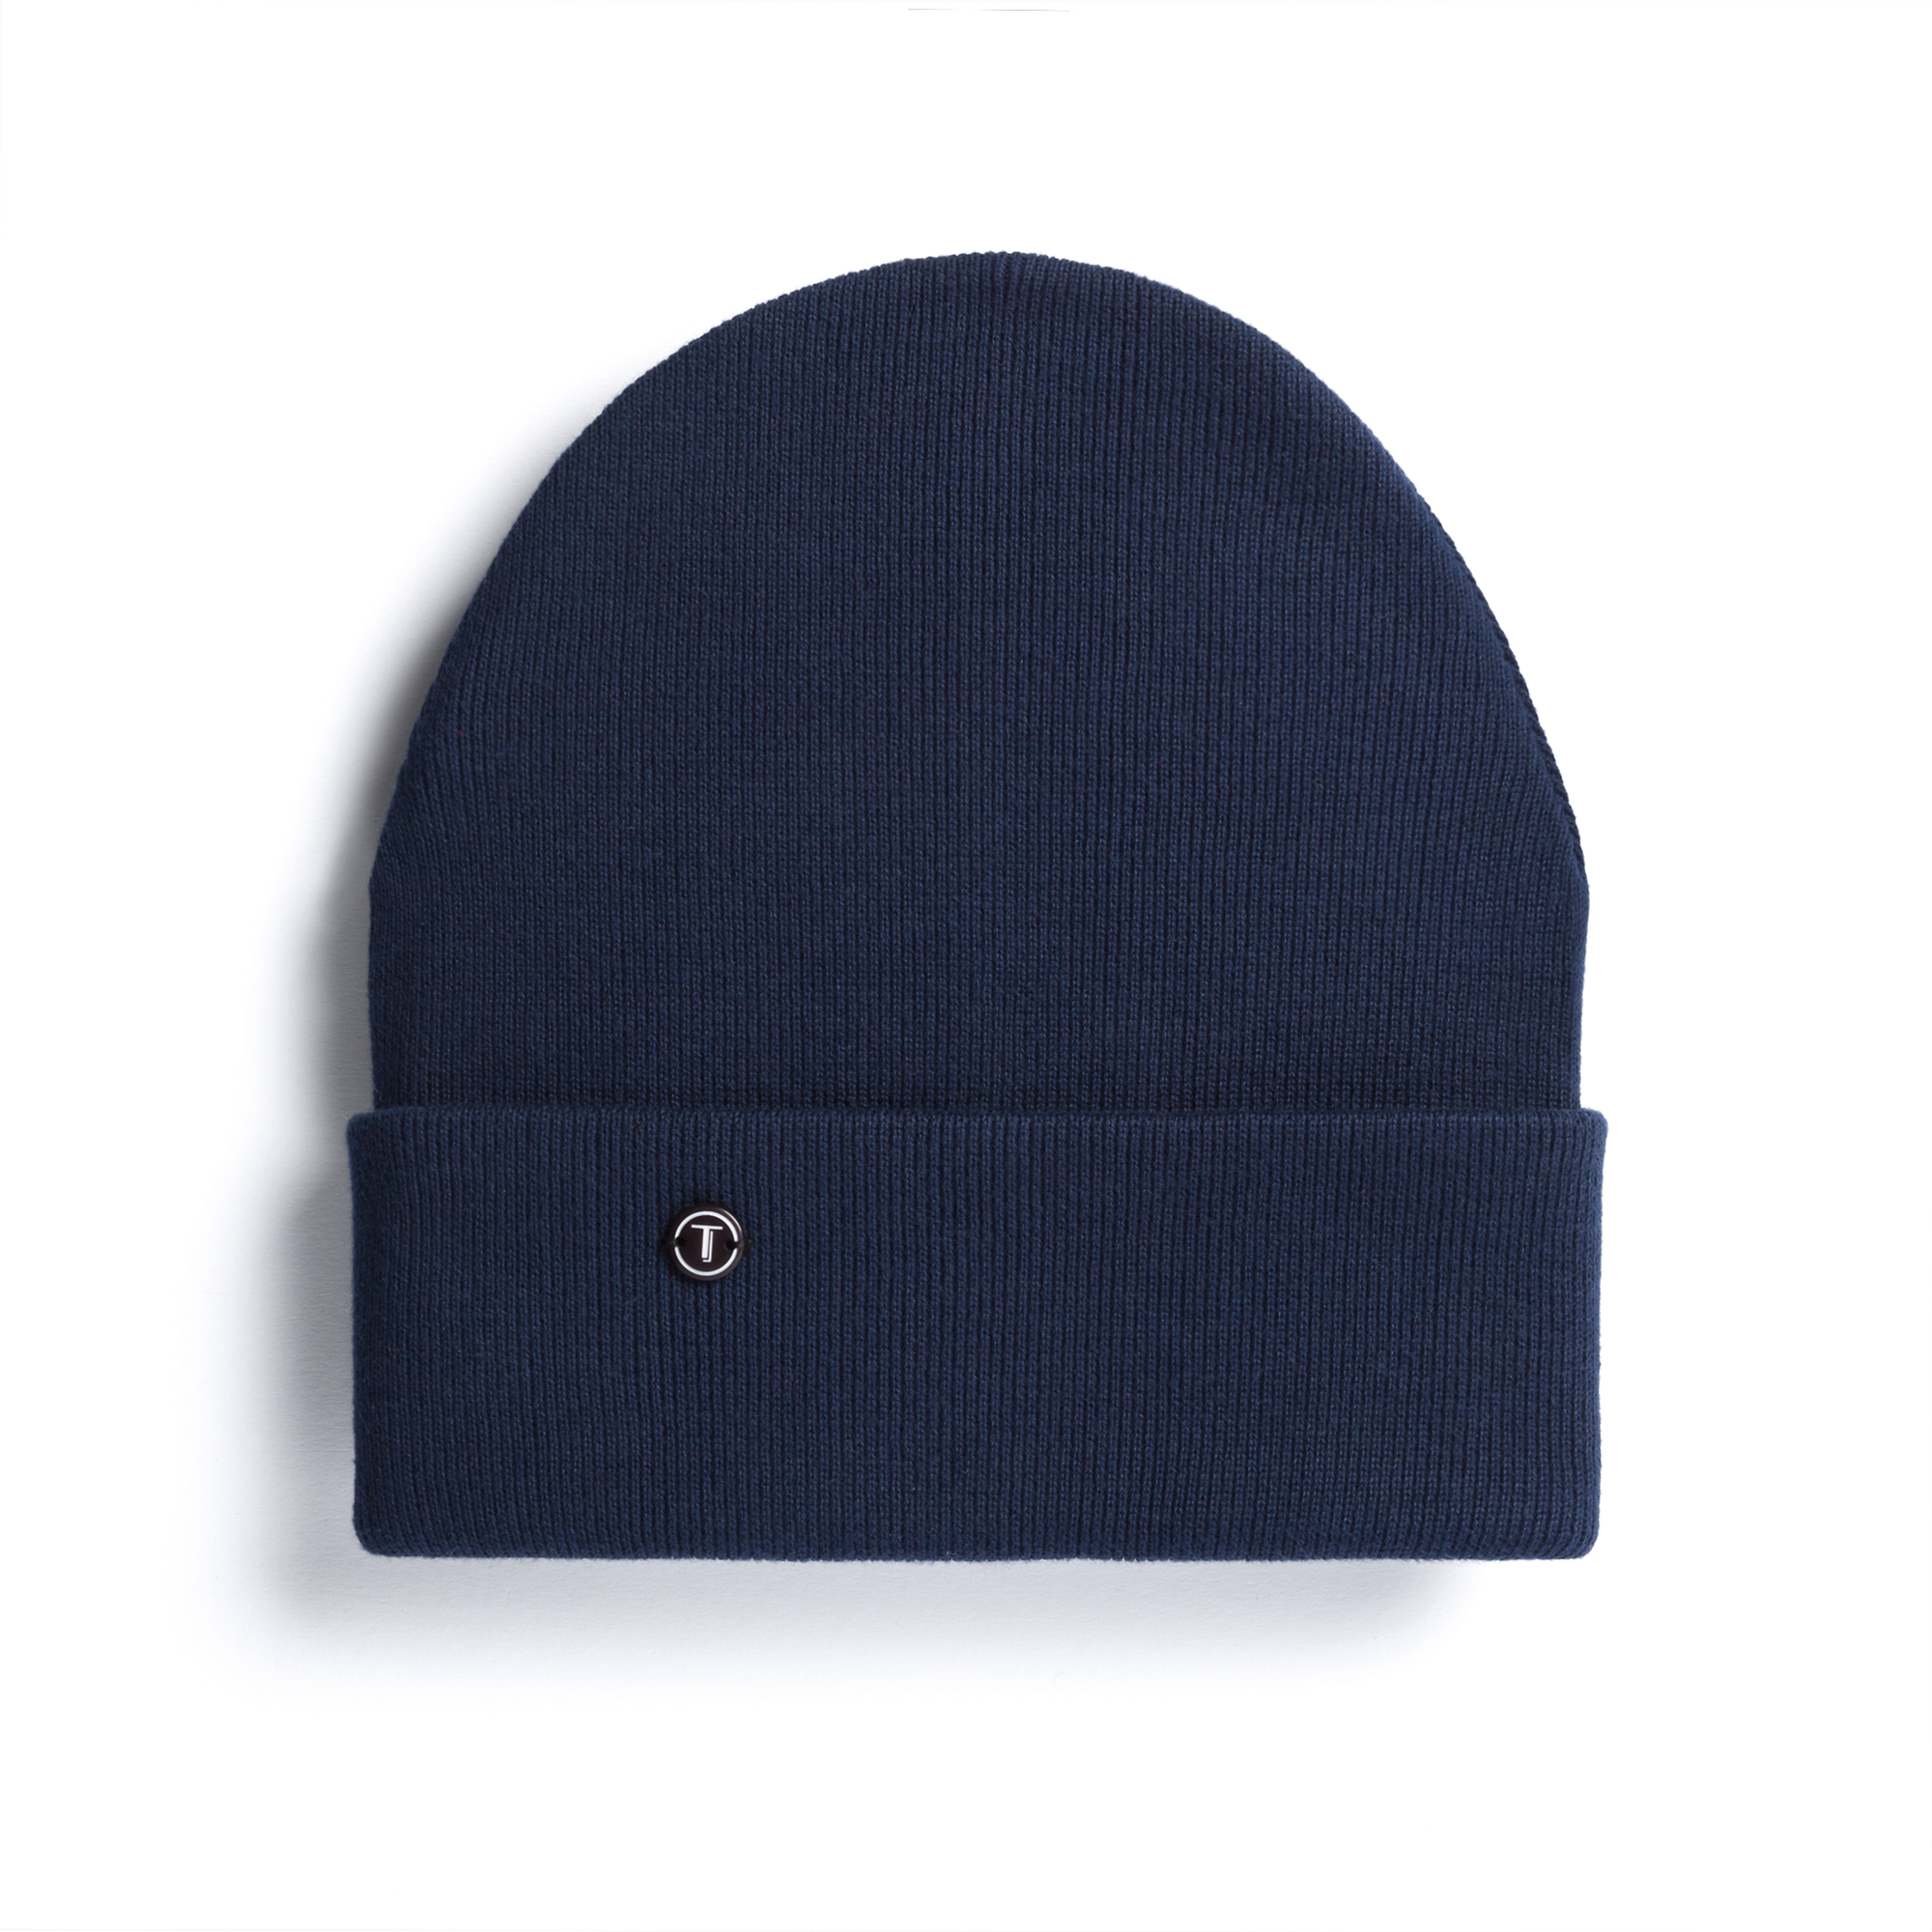 TT101 Folded Beanie Navy Bio & Fair